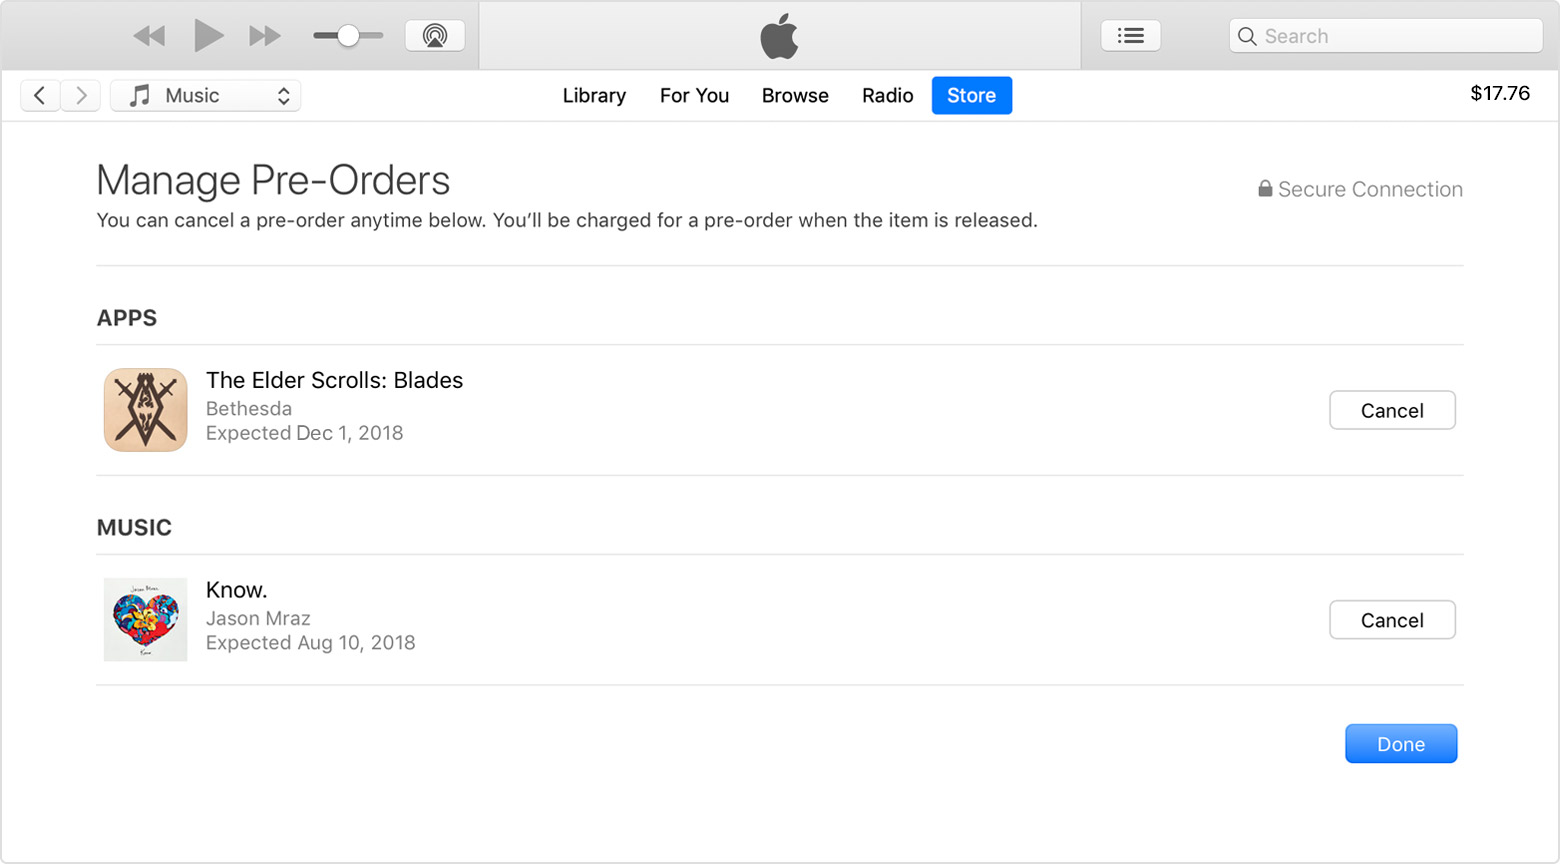 The Manage Pre-Orders page in iTunes.